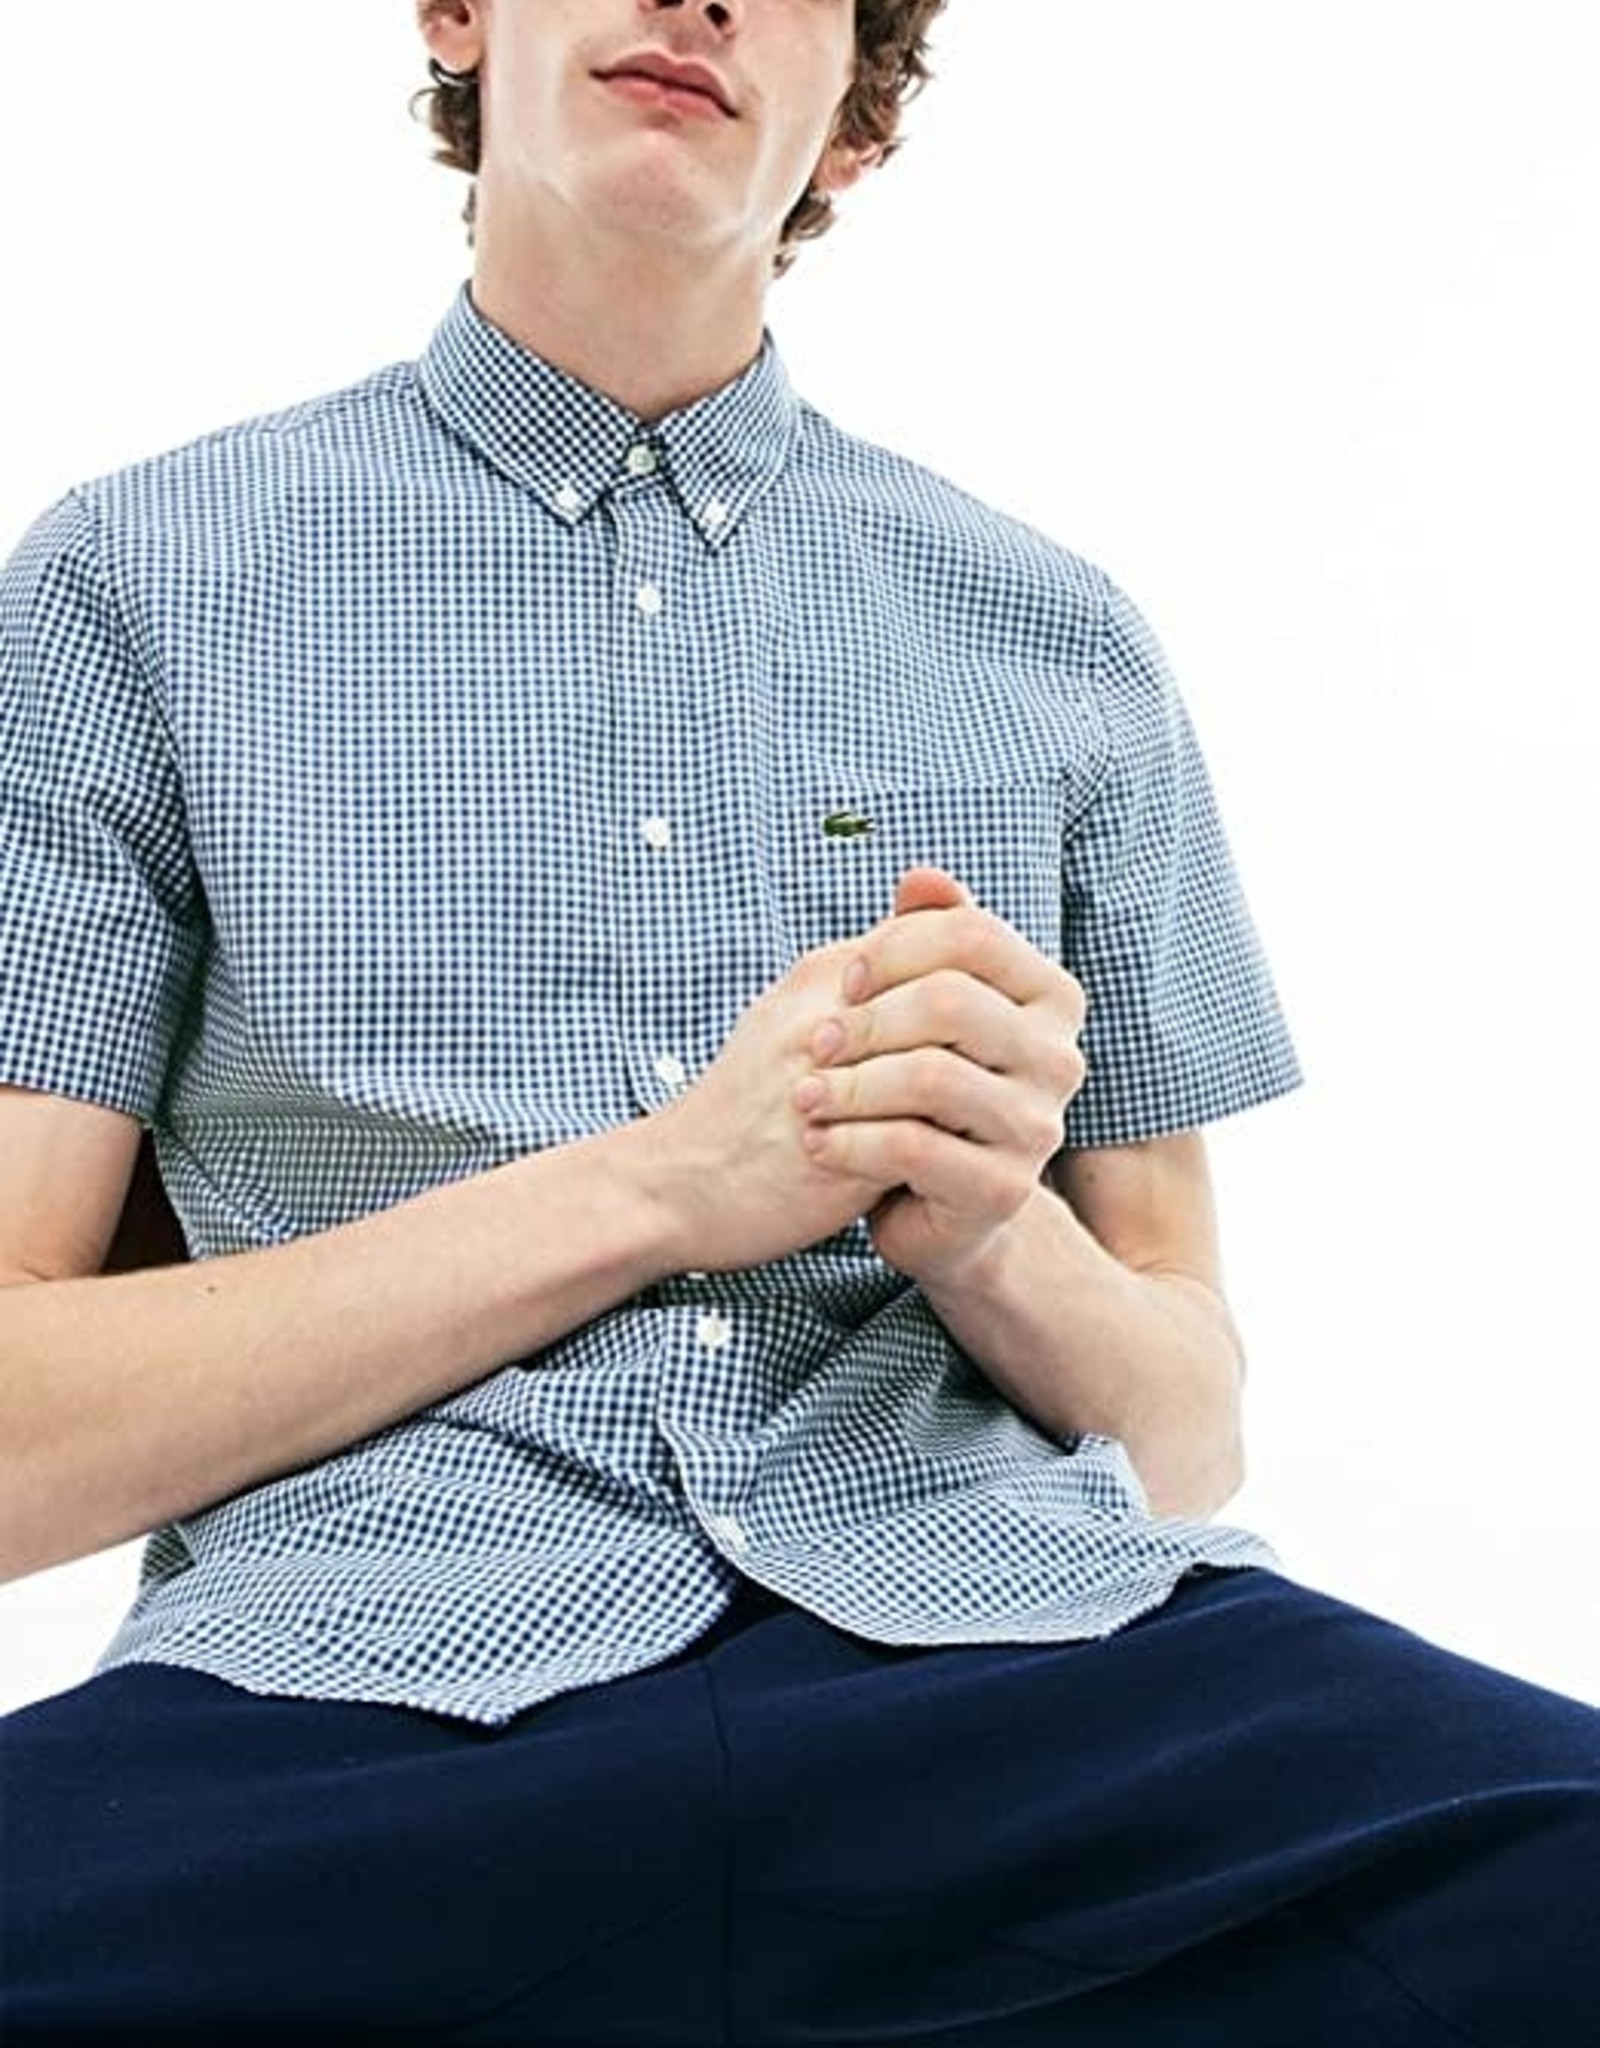 Lacoste Lacoste S/S Gingham Check Sport Shirt